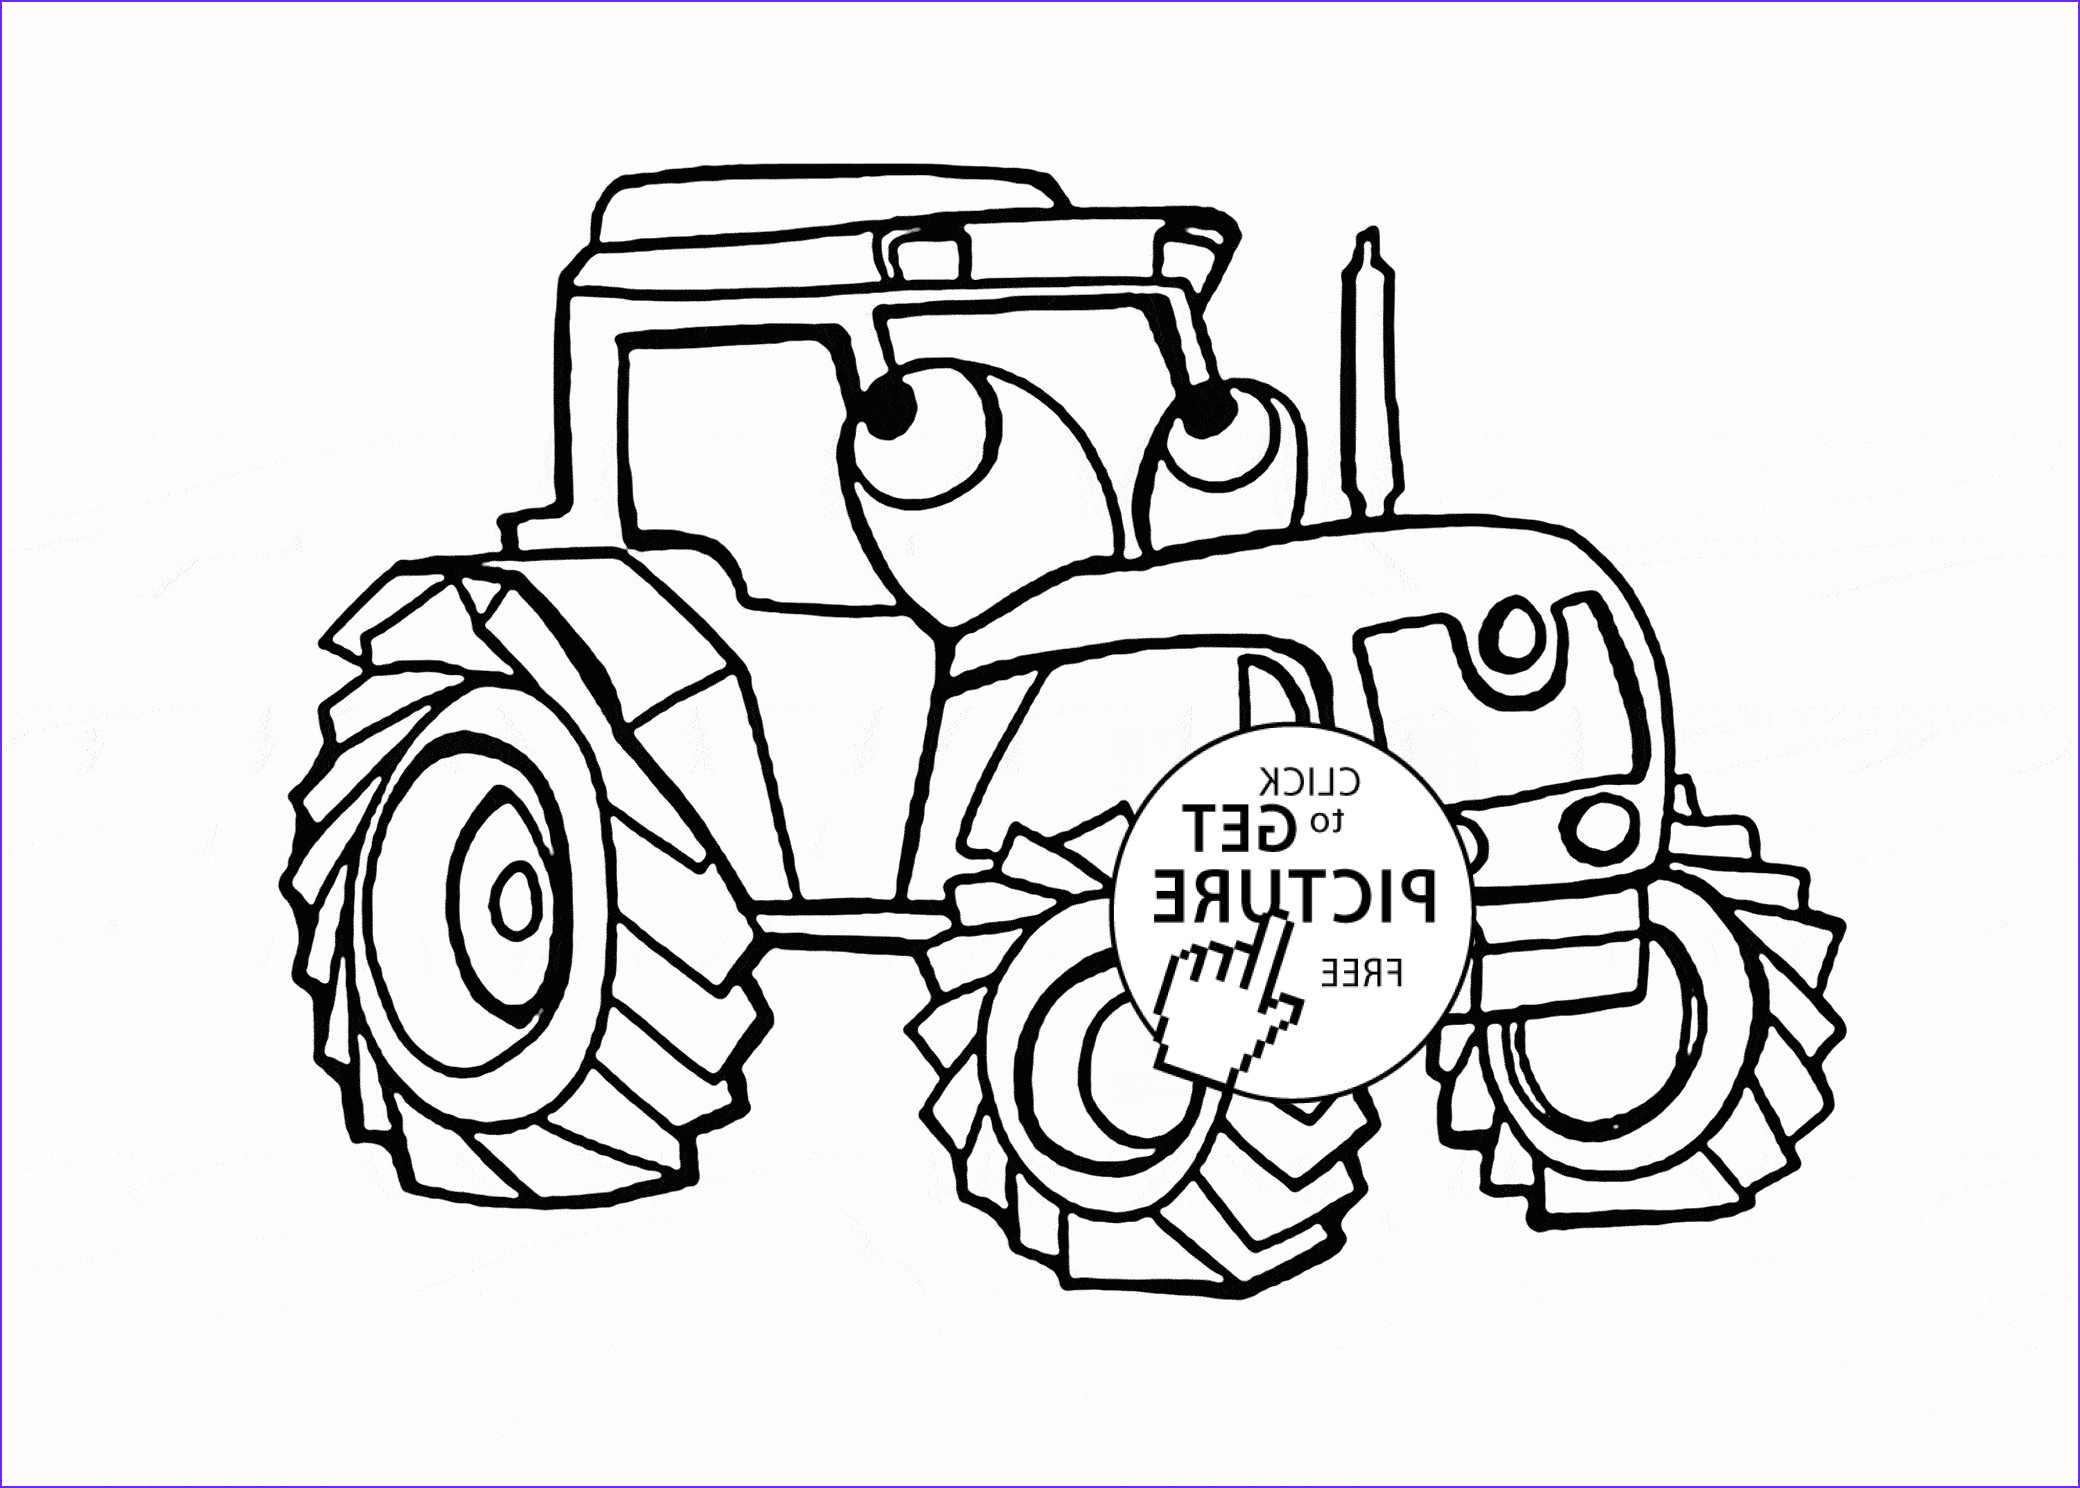 Free Tractor Coloring Page Best Of Photos Tractors Drawing at Getdrawings